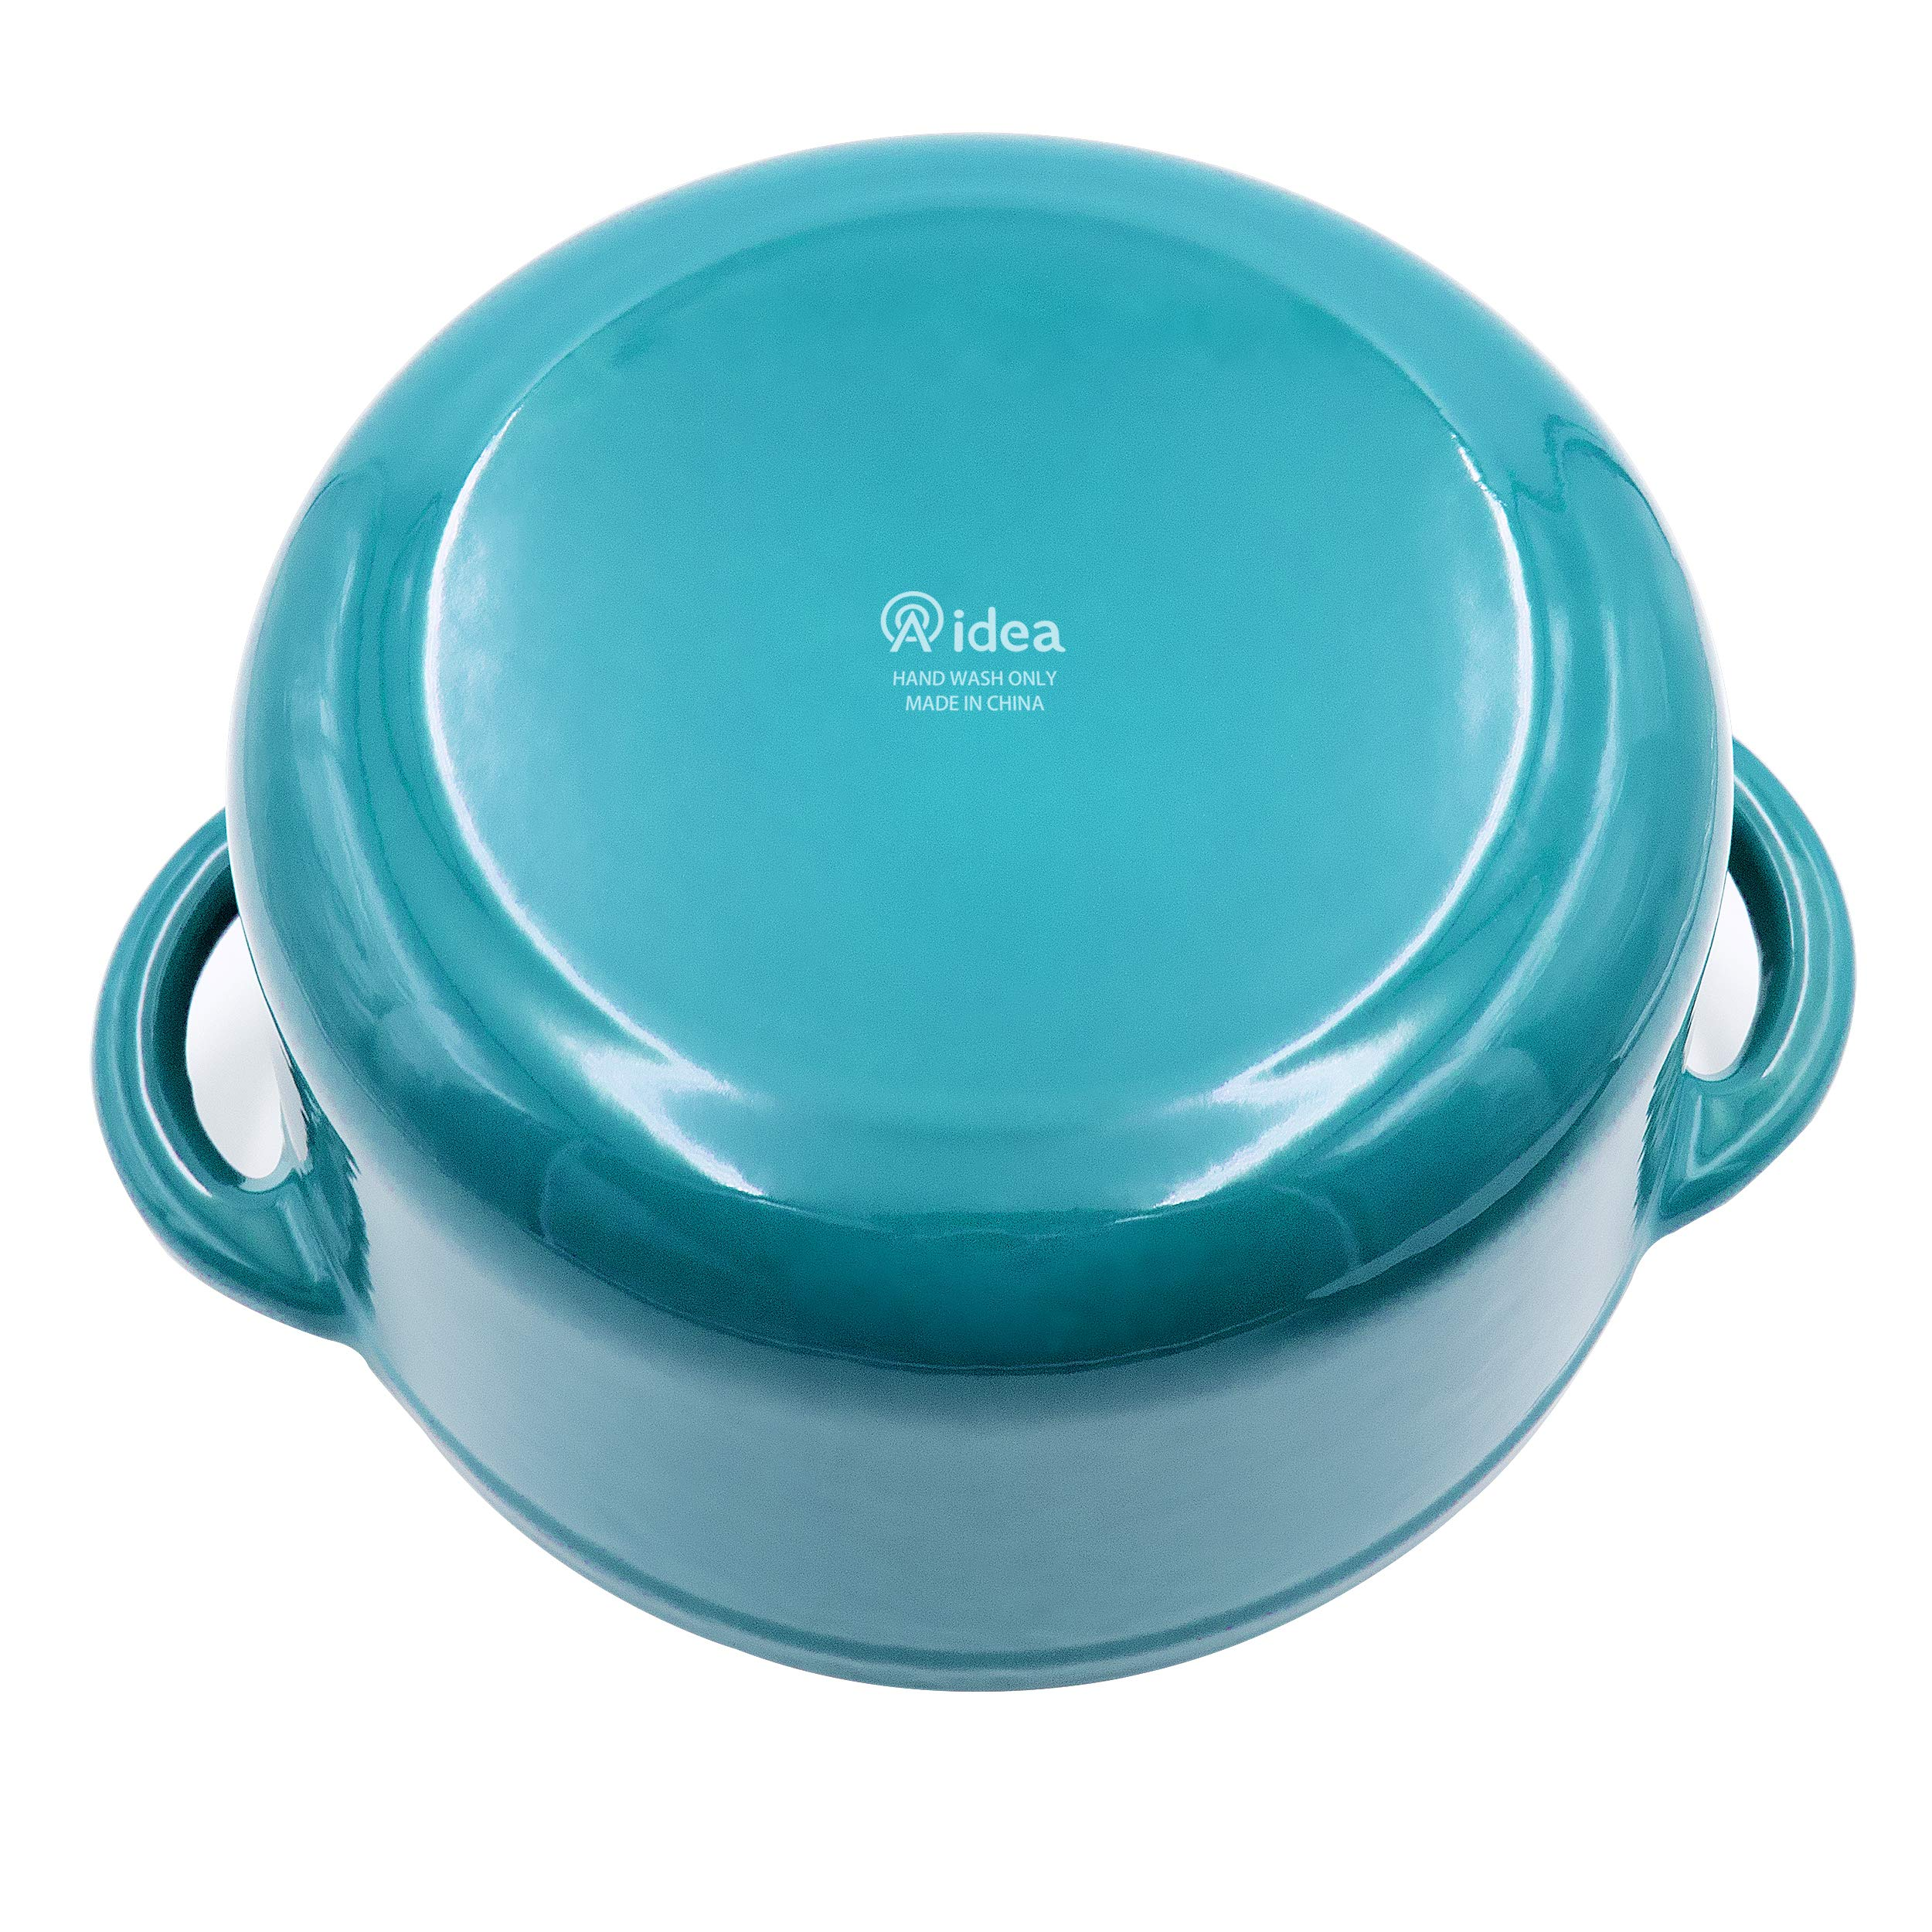 Enameled Cast Iron Dutch Oven - 5-Quart Turquoise Blue Round Ceramic Coated Cookware French Oven with Self Basting Lid by AIDEA by AIDEA (Image #5)